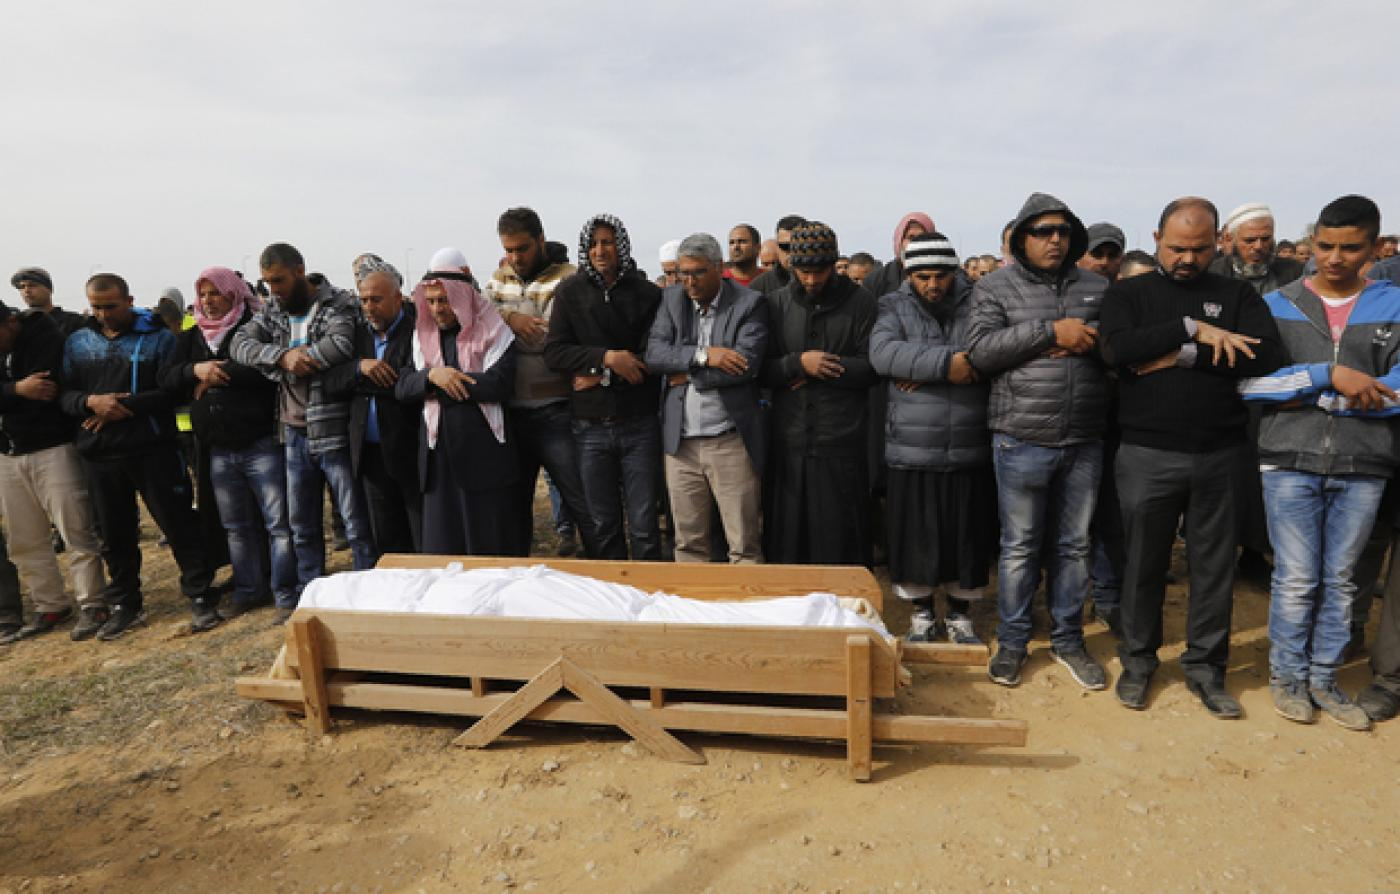 'Clear His Name': Israeli Court Petitioned to Reopen Probe Into Bedouin Teacher's Killing